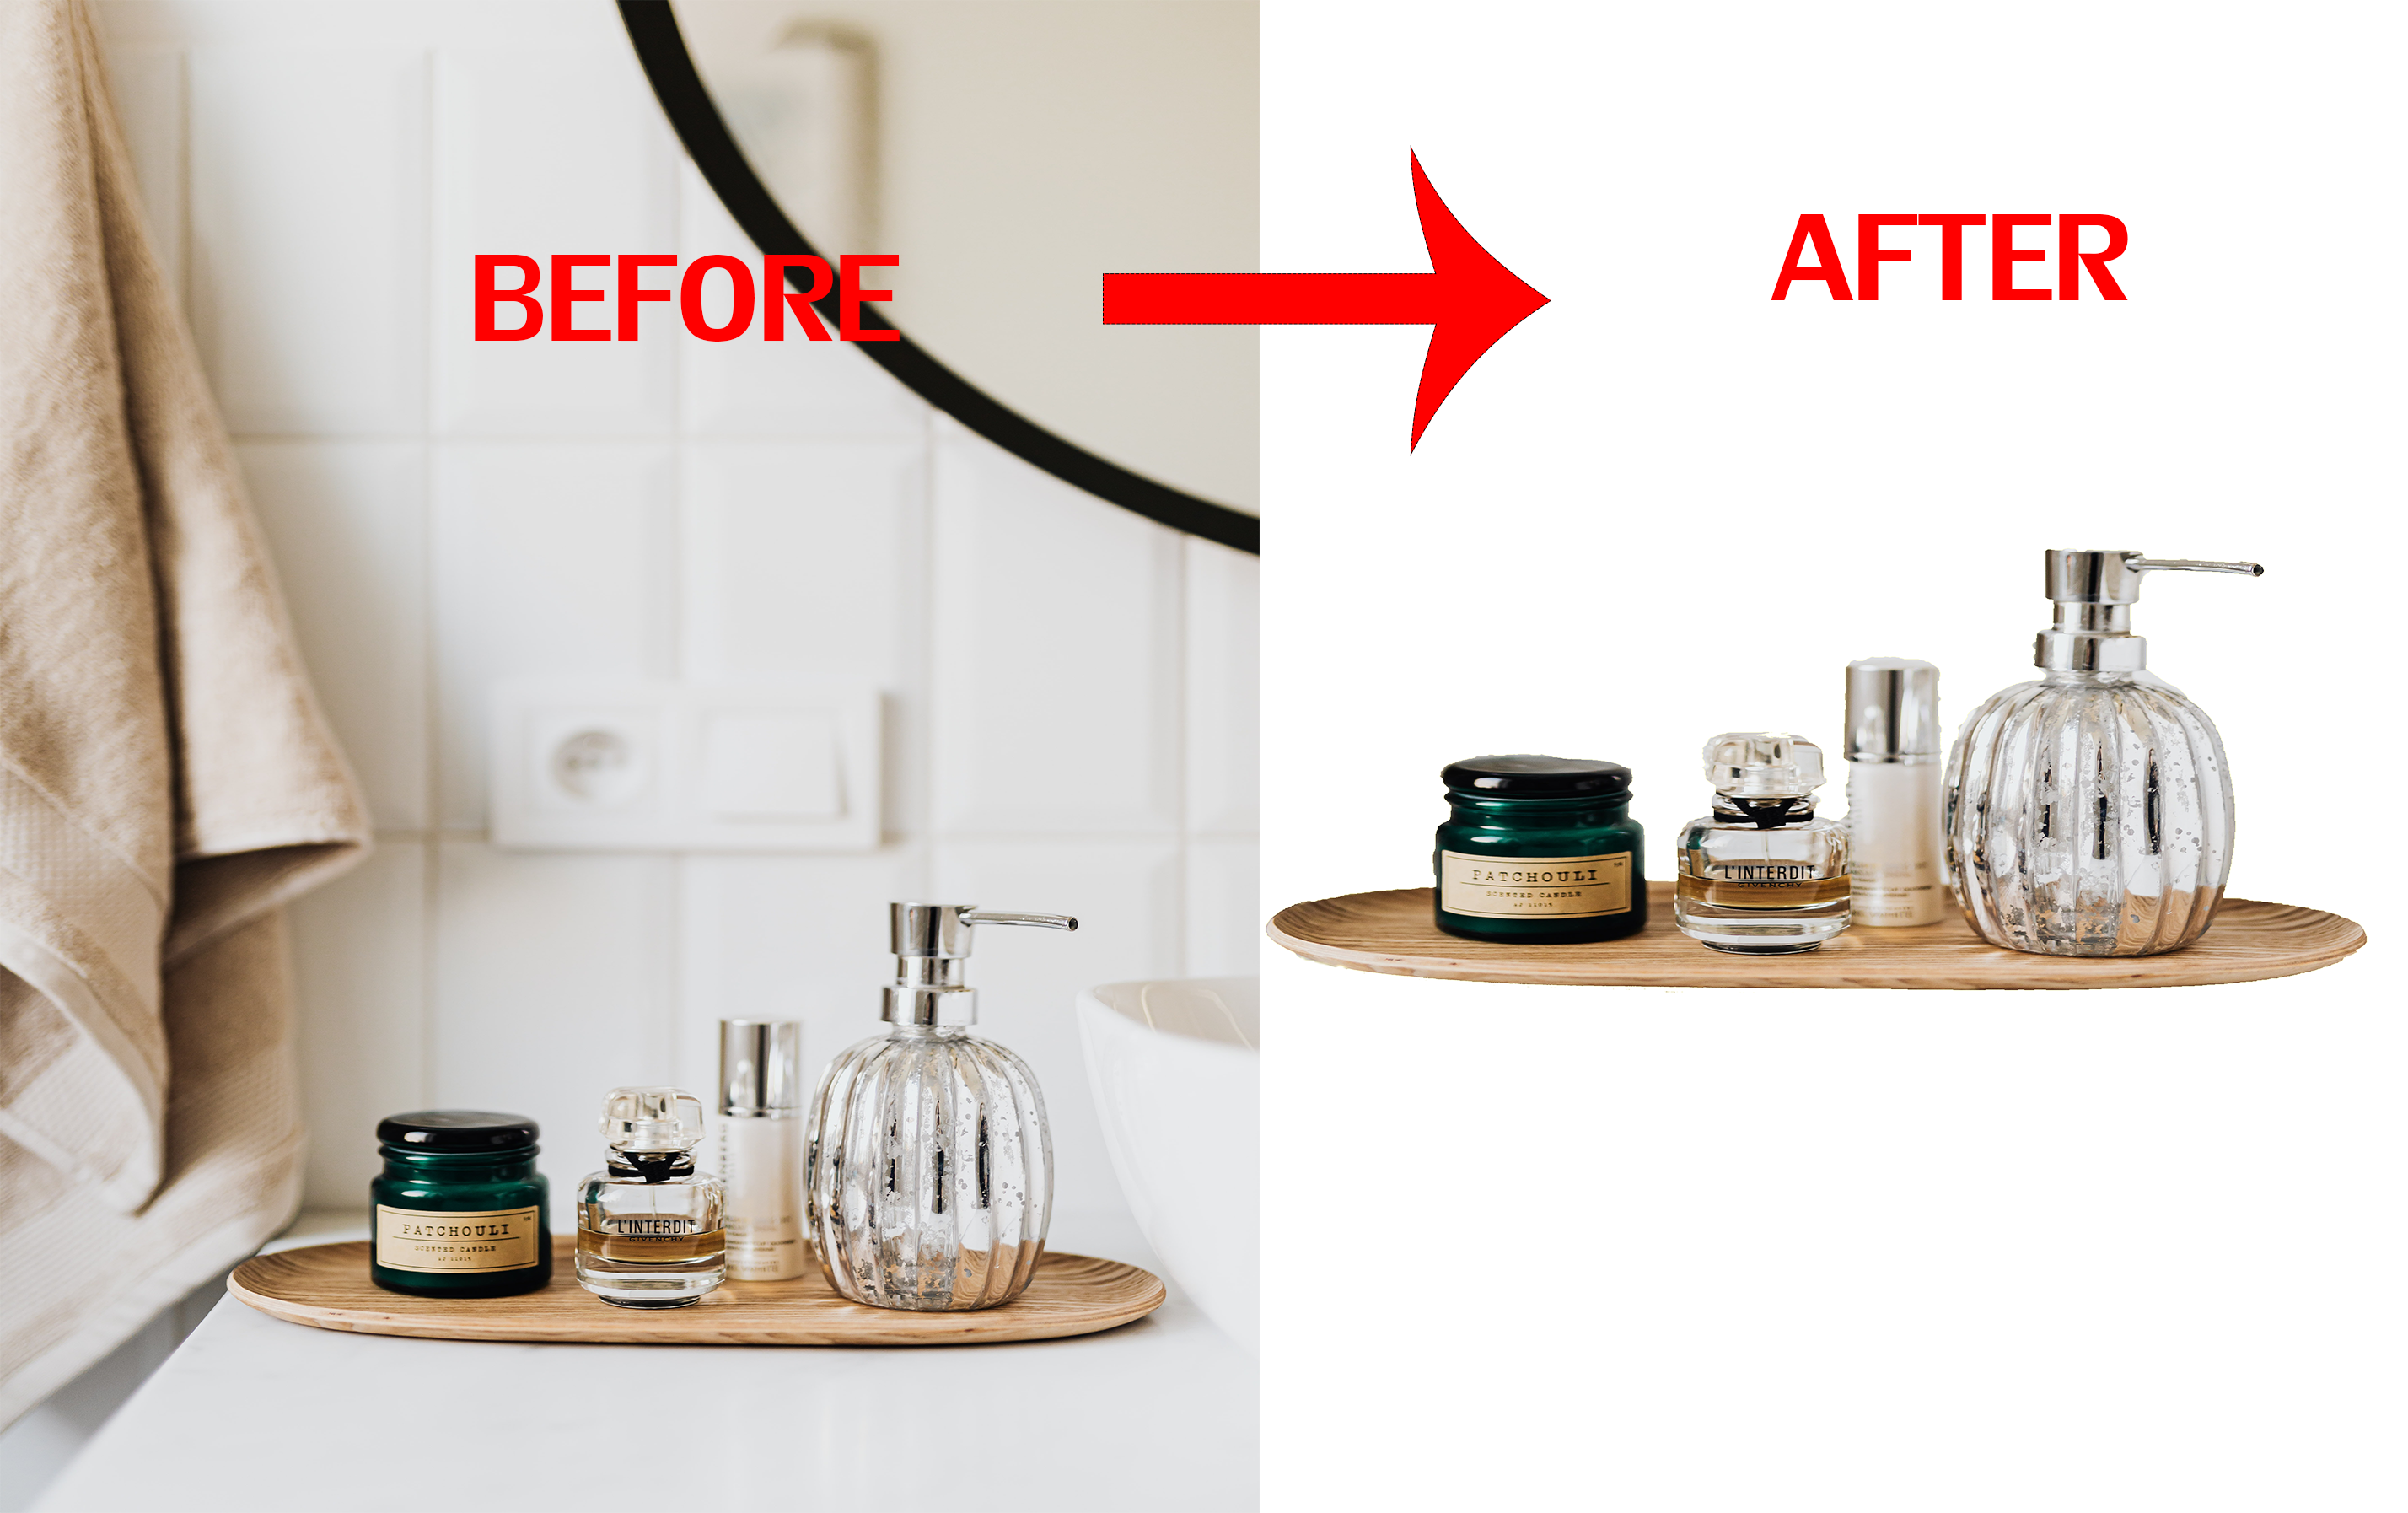 Remove Background of 5 product images lass than 24hr